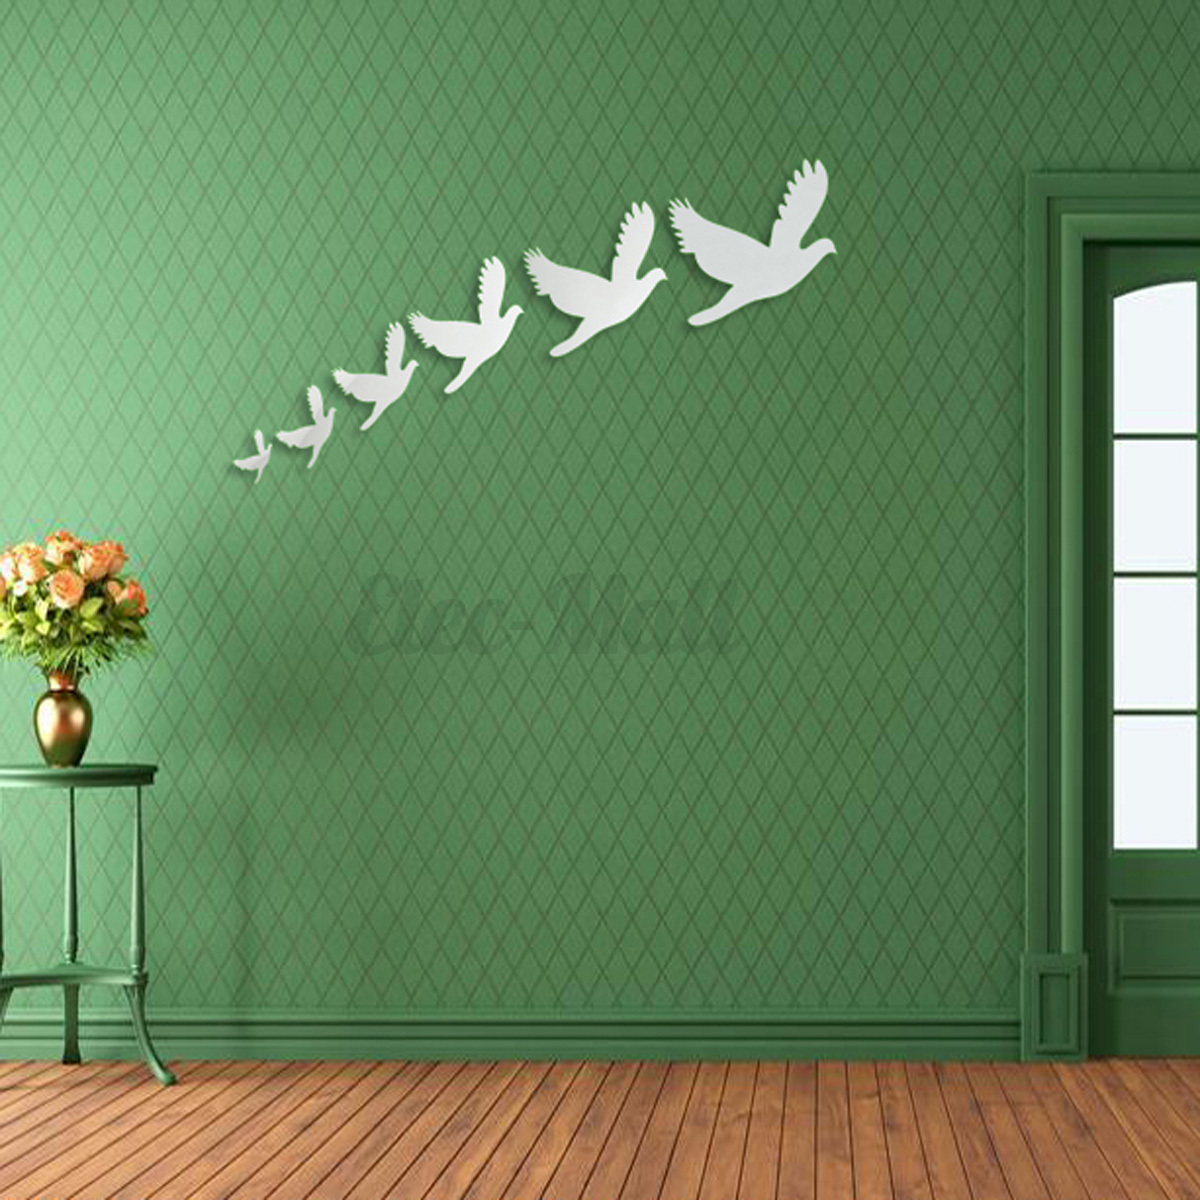 Removable diy 3d mirror surface wall stickers mural art for Sticker mural 3d